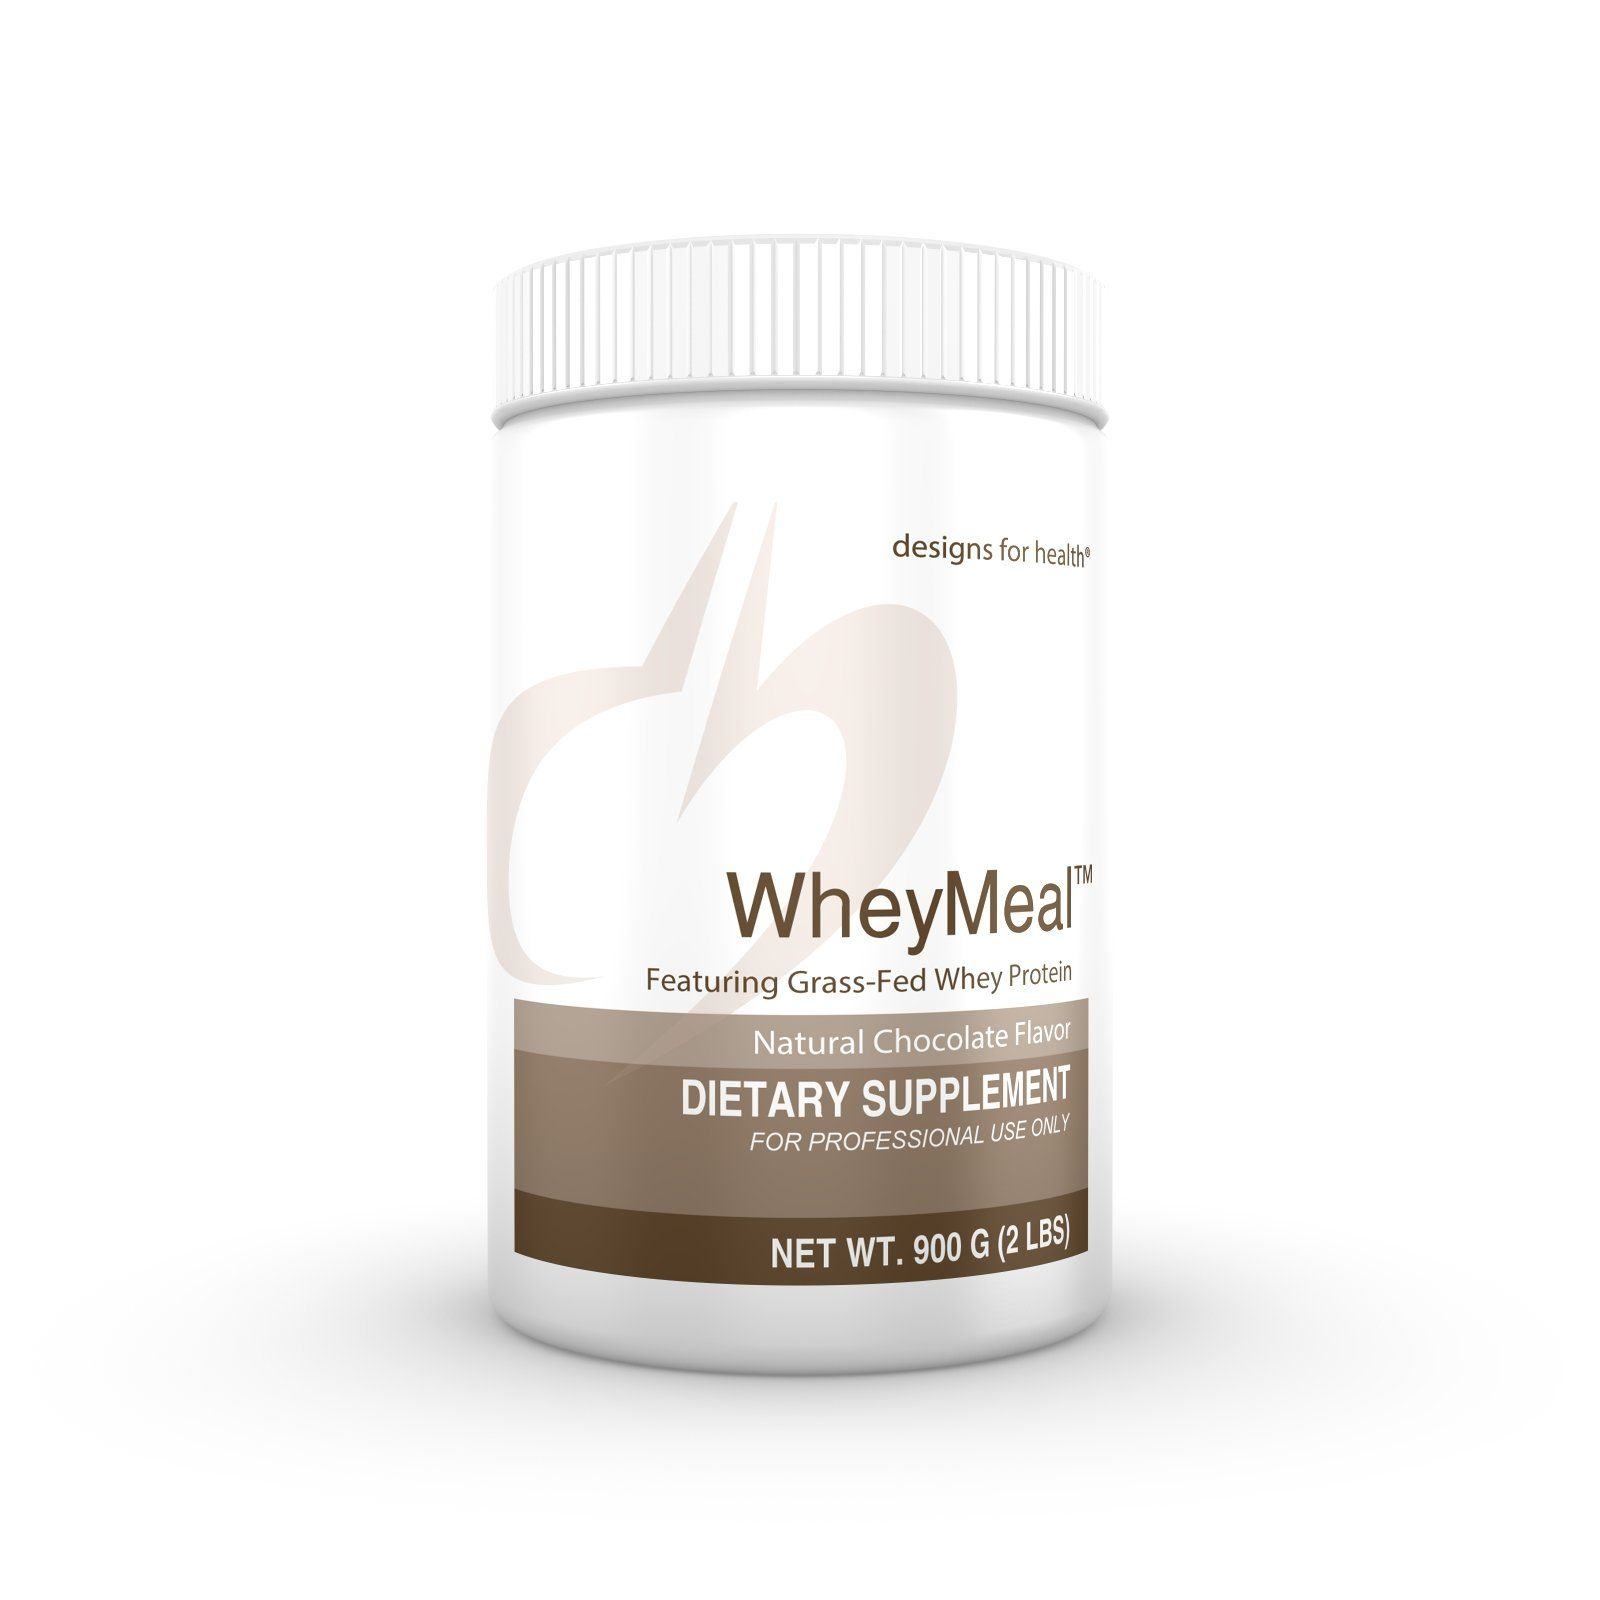 WheyMeal by Designs for Health GrassFed Whey Protein